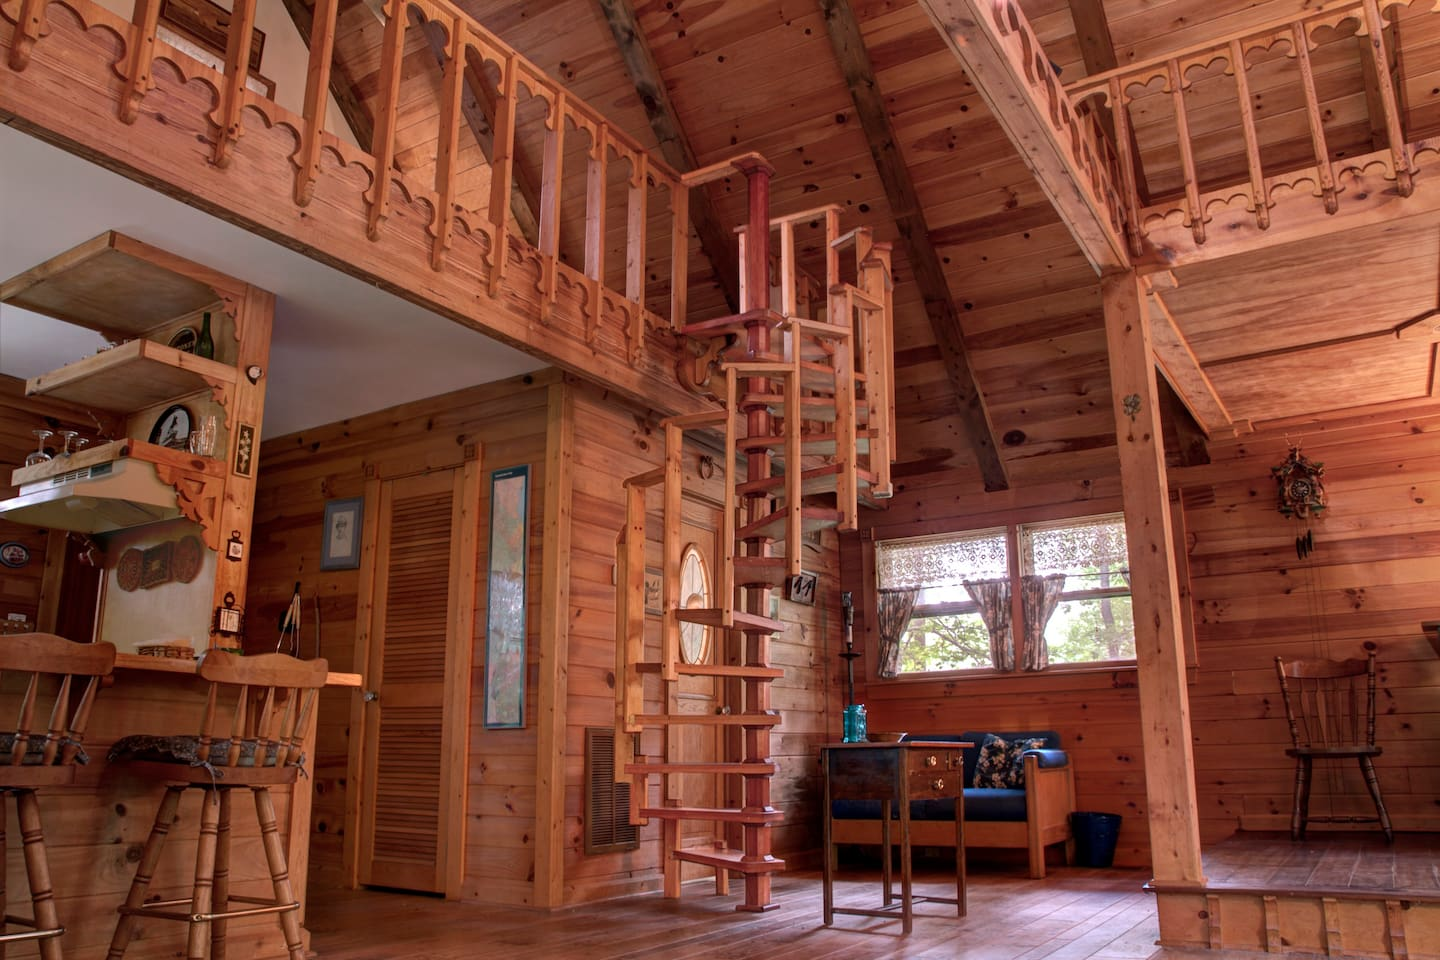 Beautiful details abound, such as the custom designed and handcrafted spiral staircase.